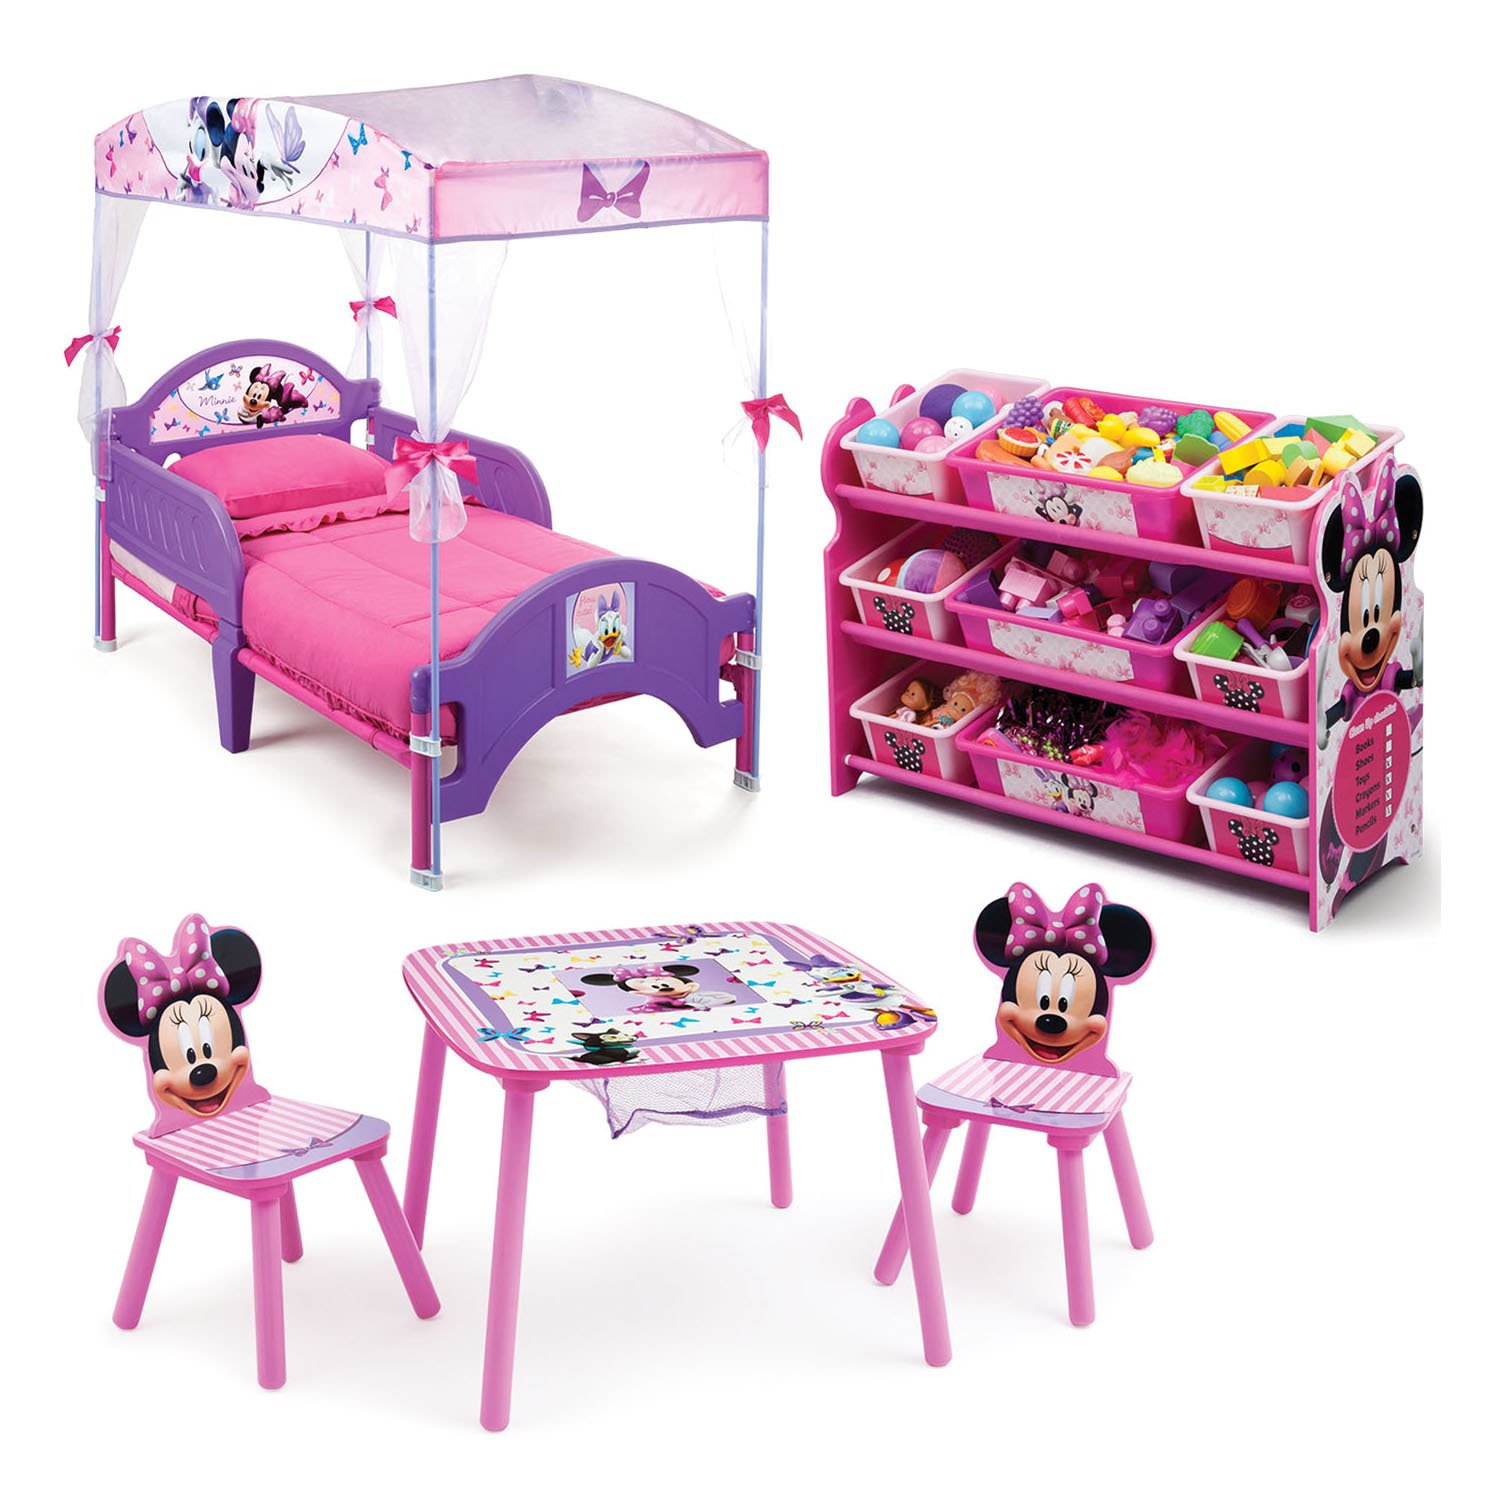 Details about Girls Minnie Mouse Disney Toddler Canopy Bed Bedroom Toy Bins  Table Chairs Set